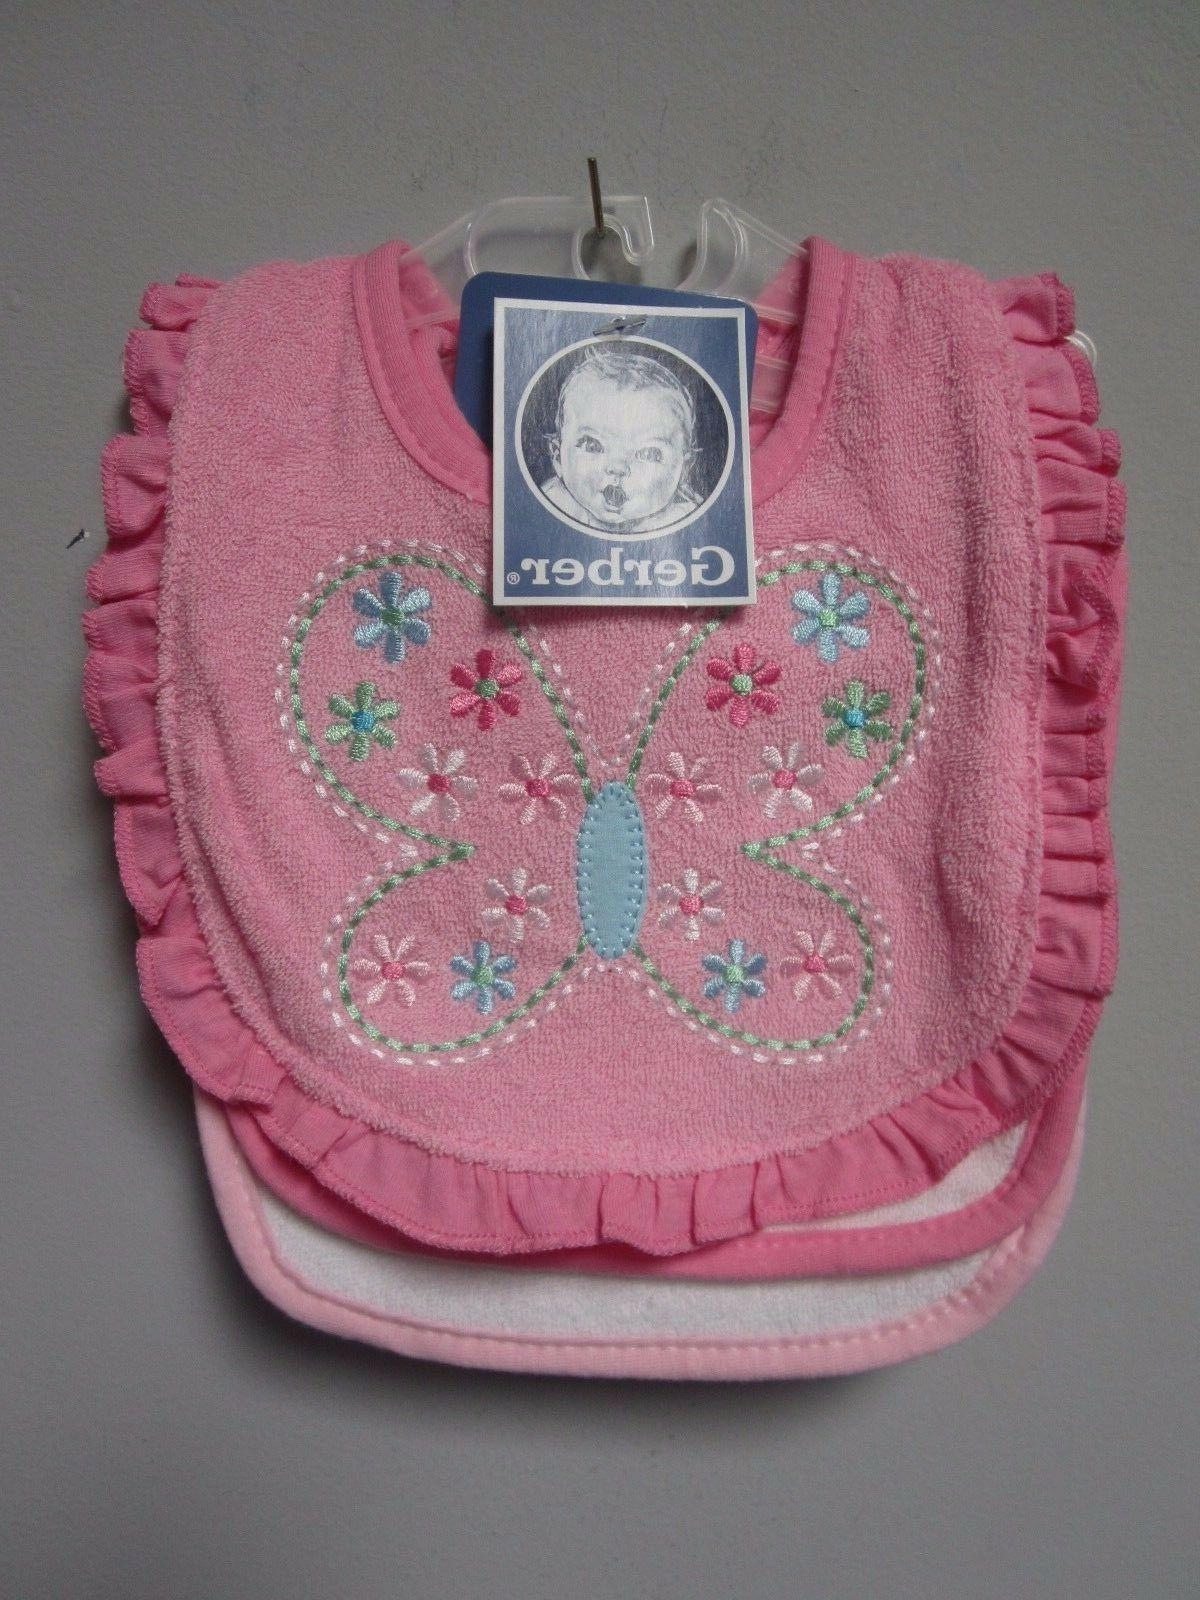 Gerber Girl Pink Butterfly/Flower Baby Clothes Shower